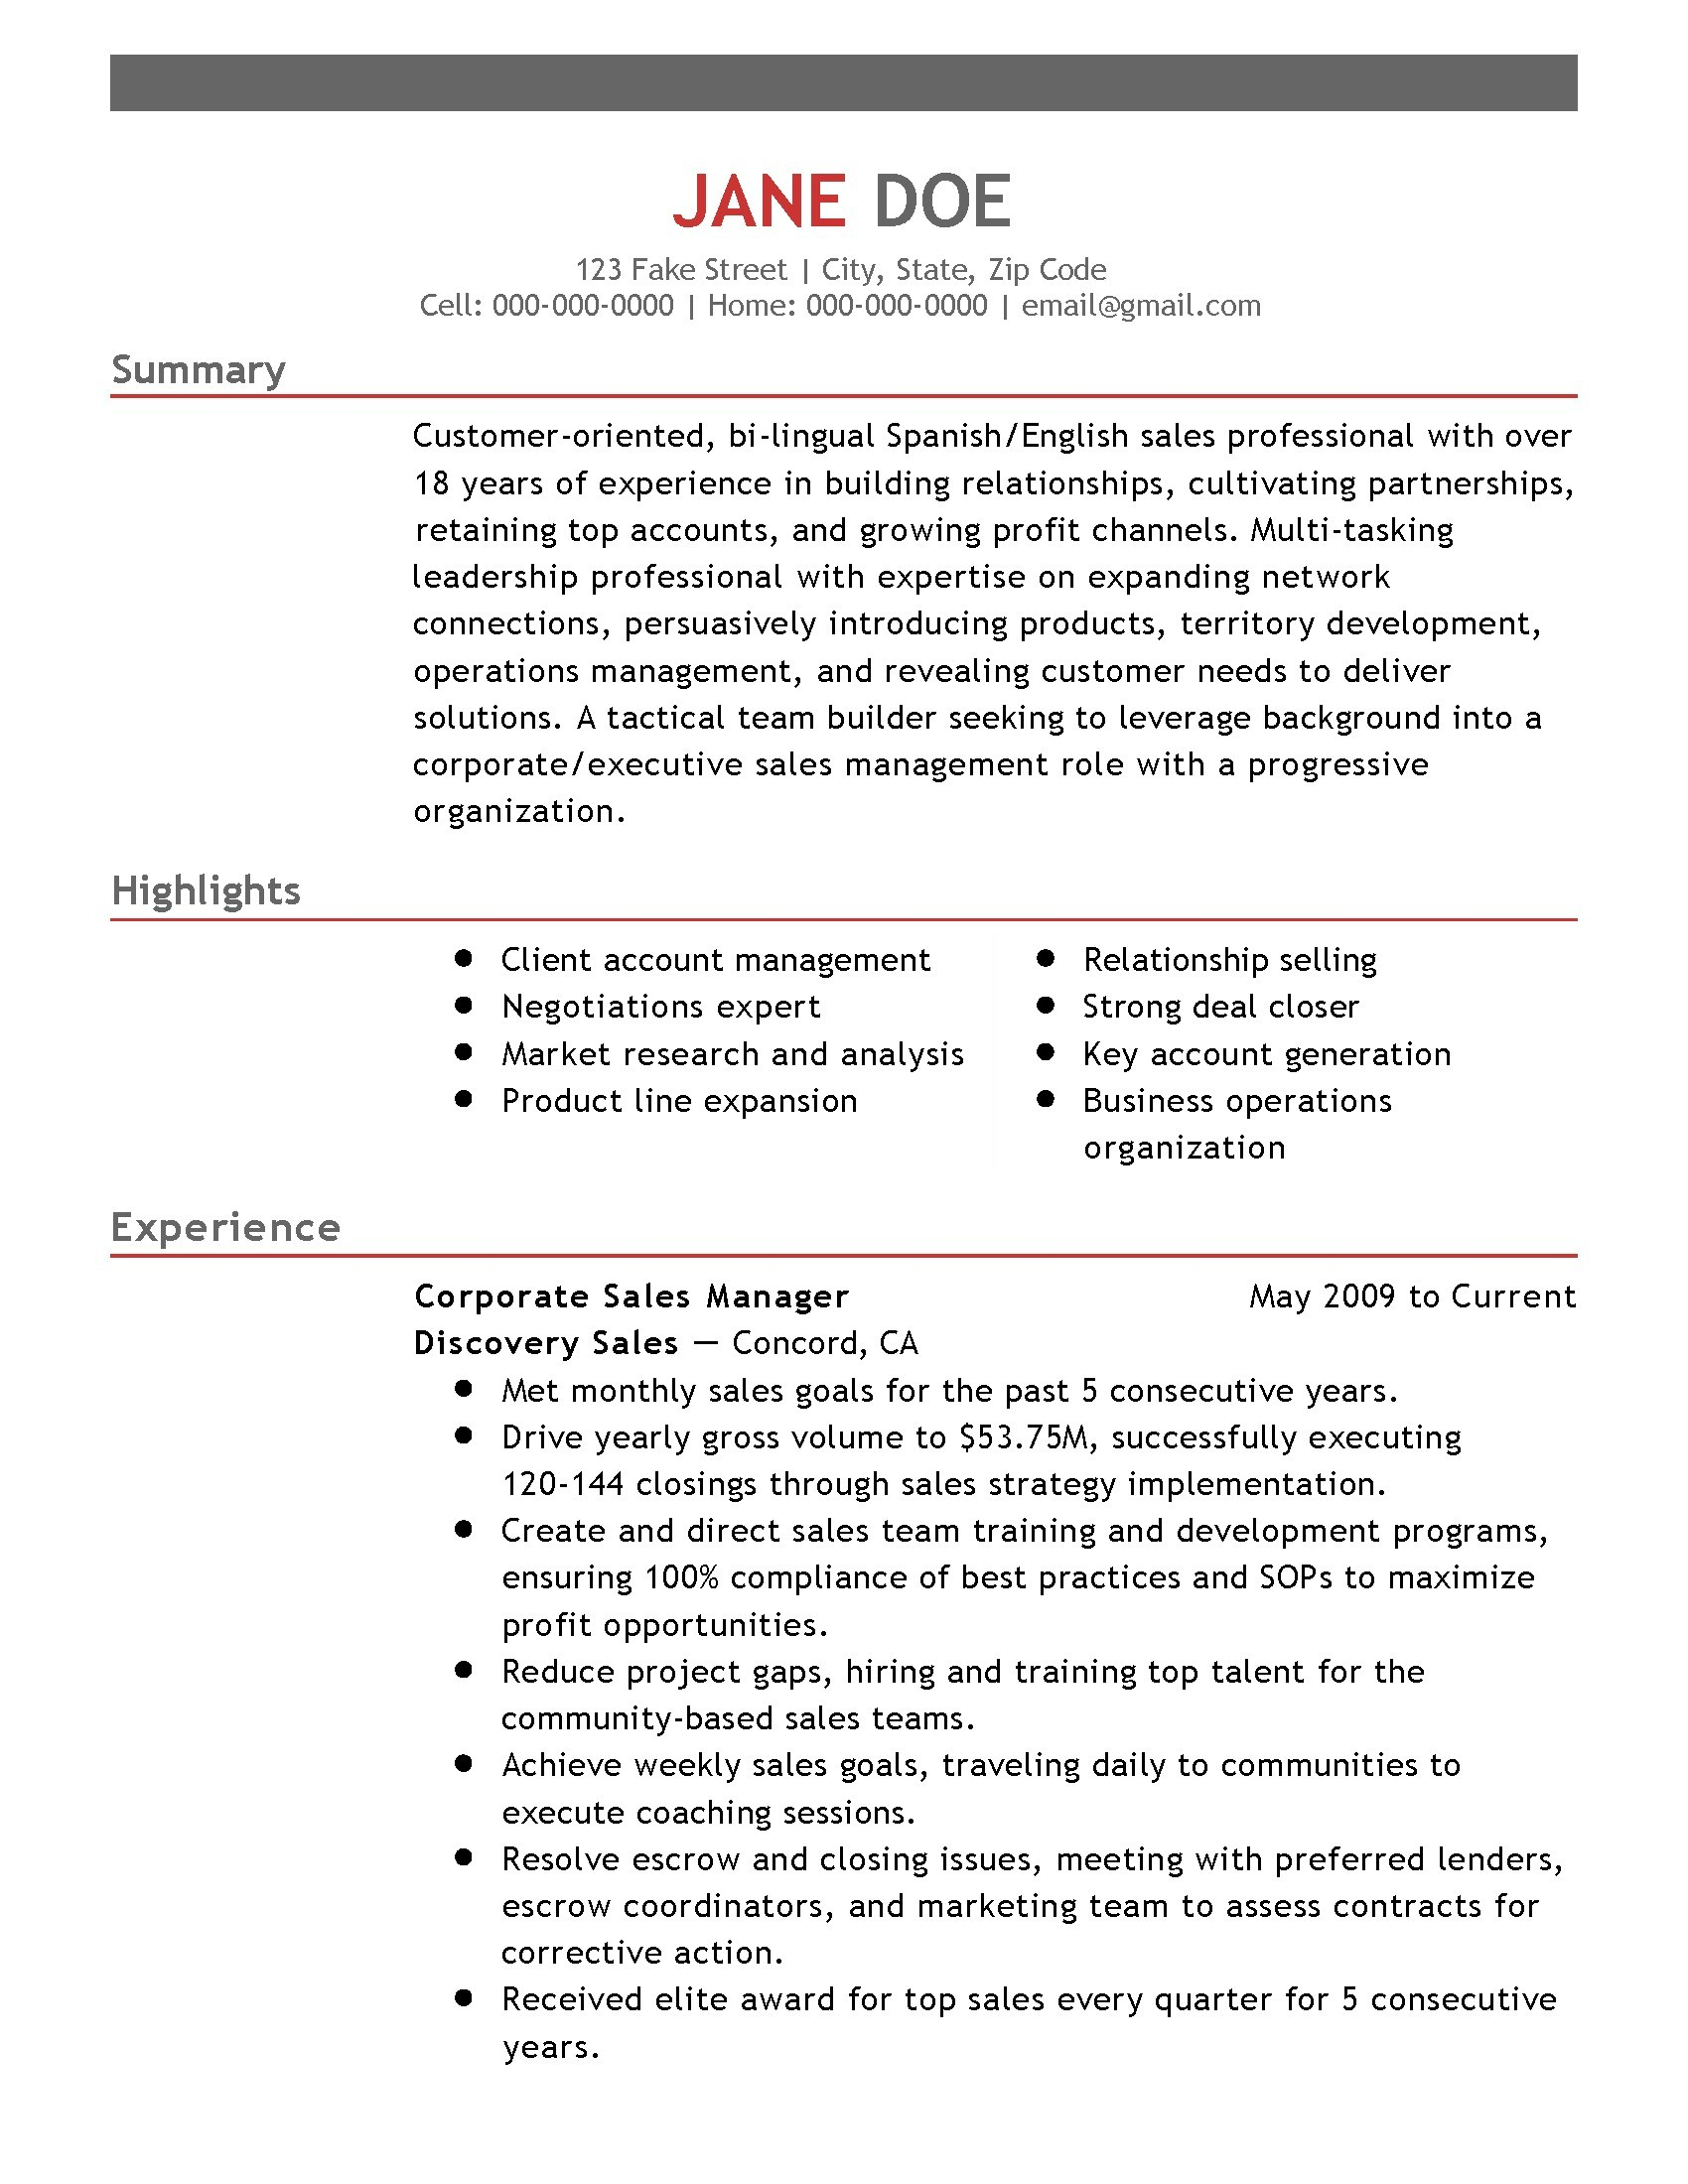 Real Estate Agent Job Description for Resume - Real Estate Agent Resume Unique Real Estate Agent Job Description